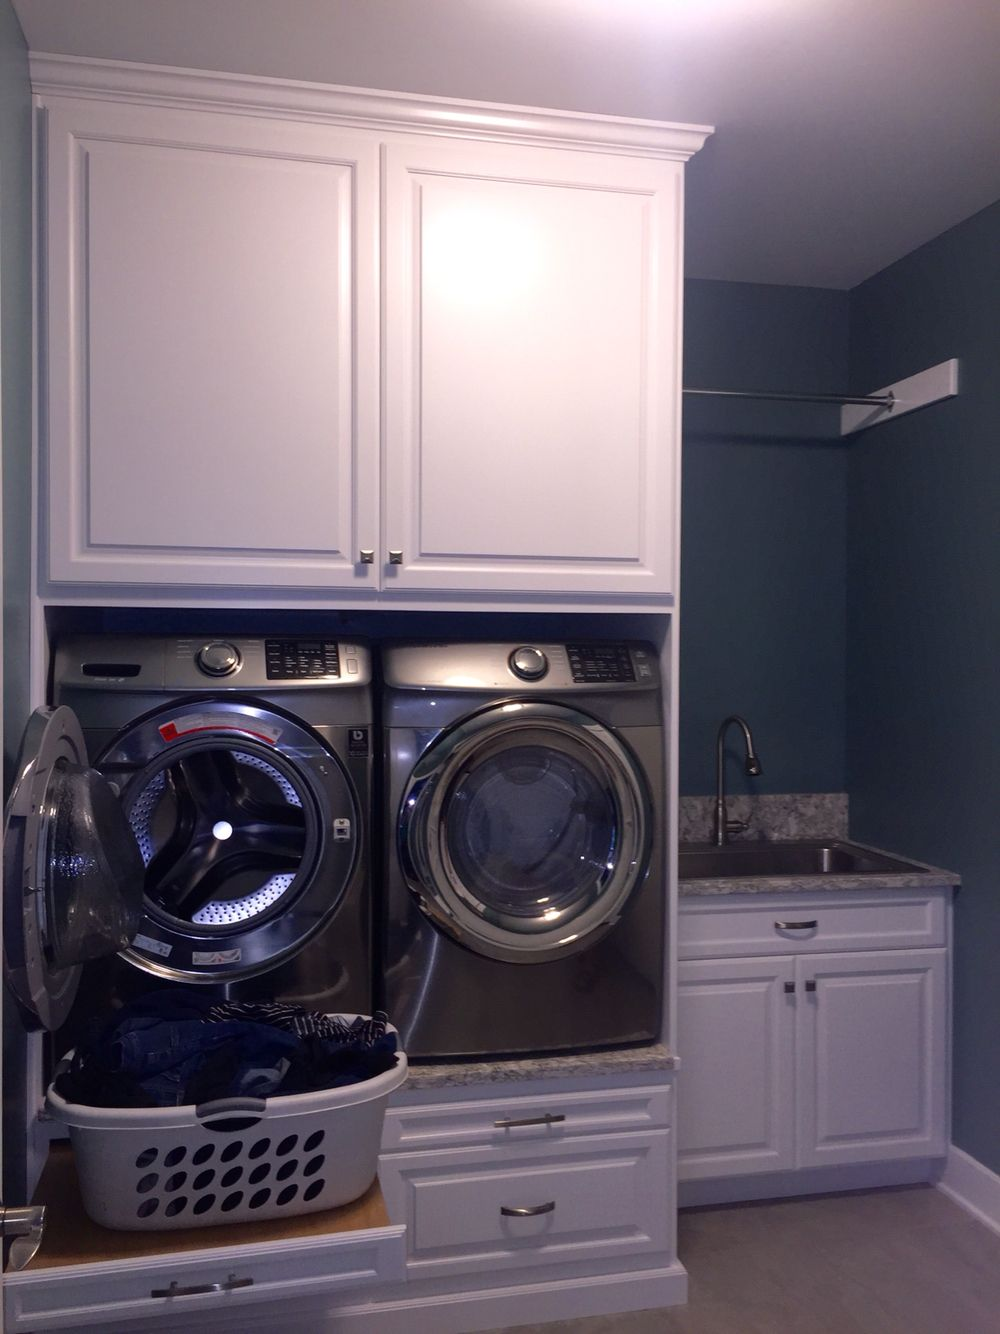 Unfinished Basement Ideas On A Budget Built In For Laundry Room. Great Alternative For Laundry